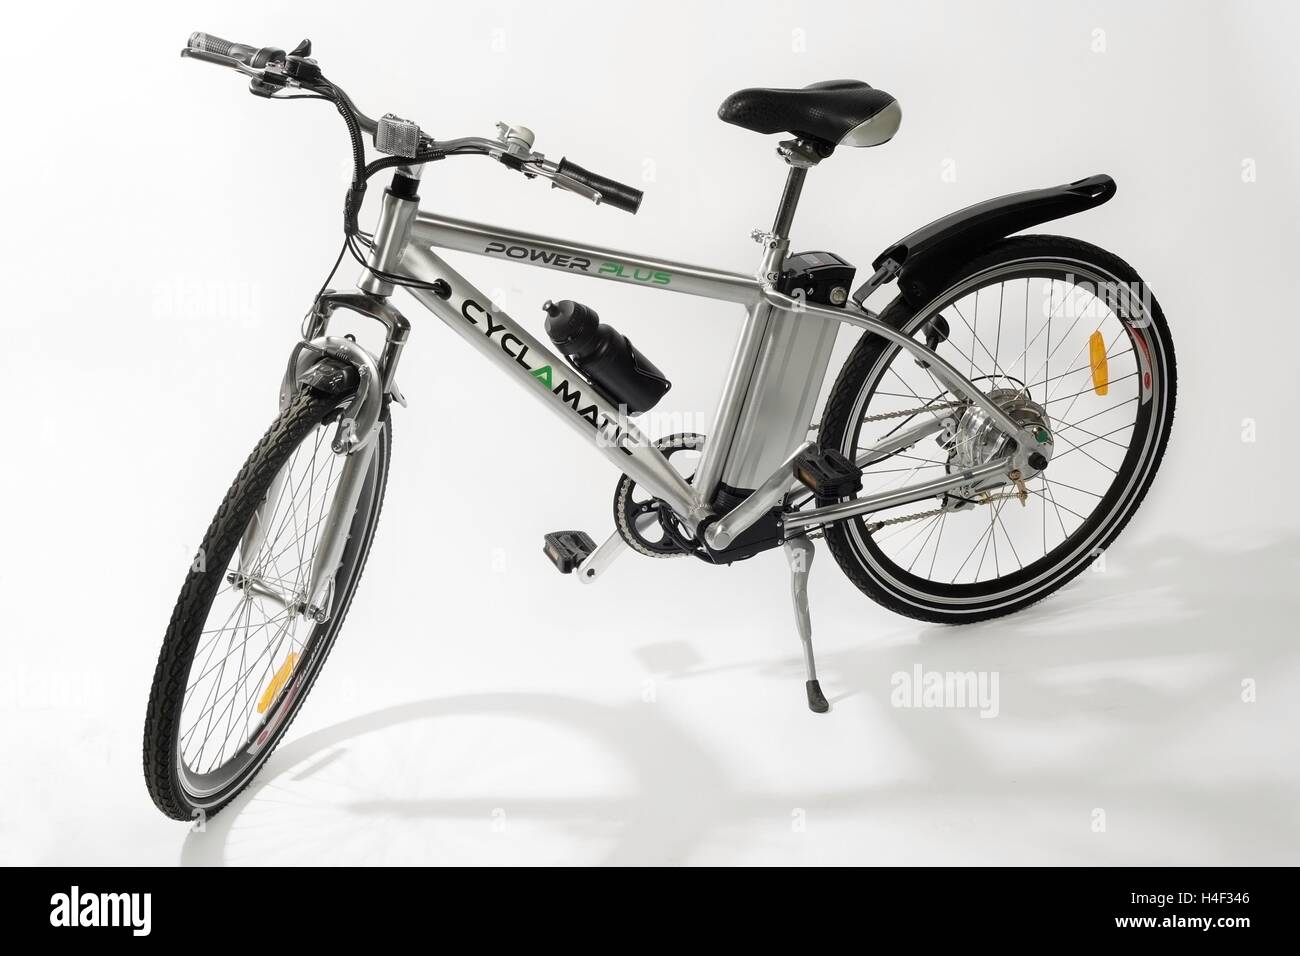 Battery powered electric bicycle, Cyclamatic - Stock Image